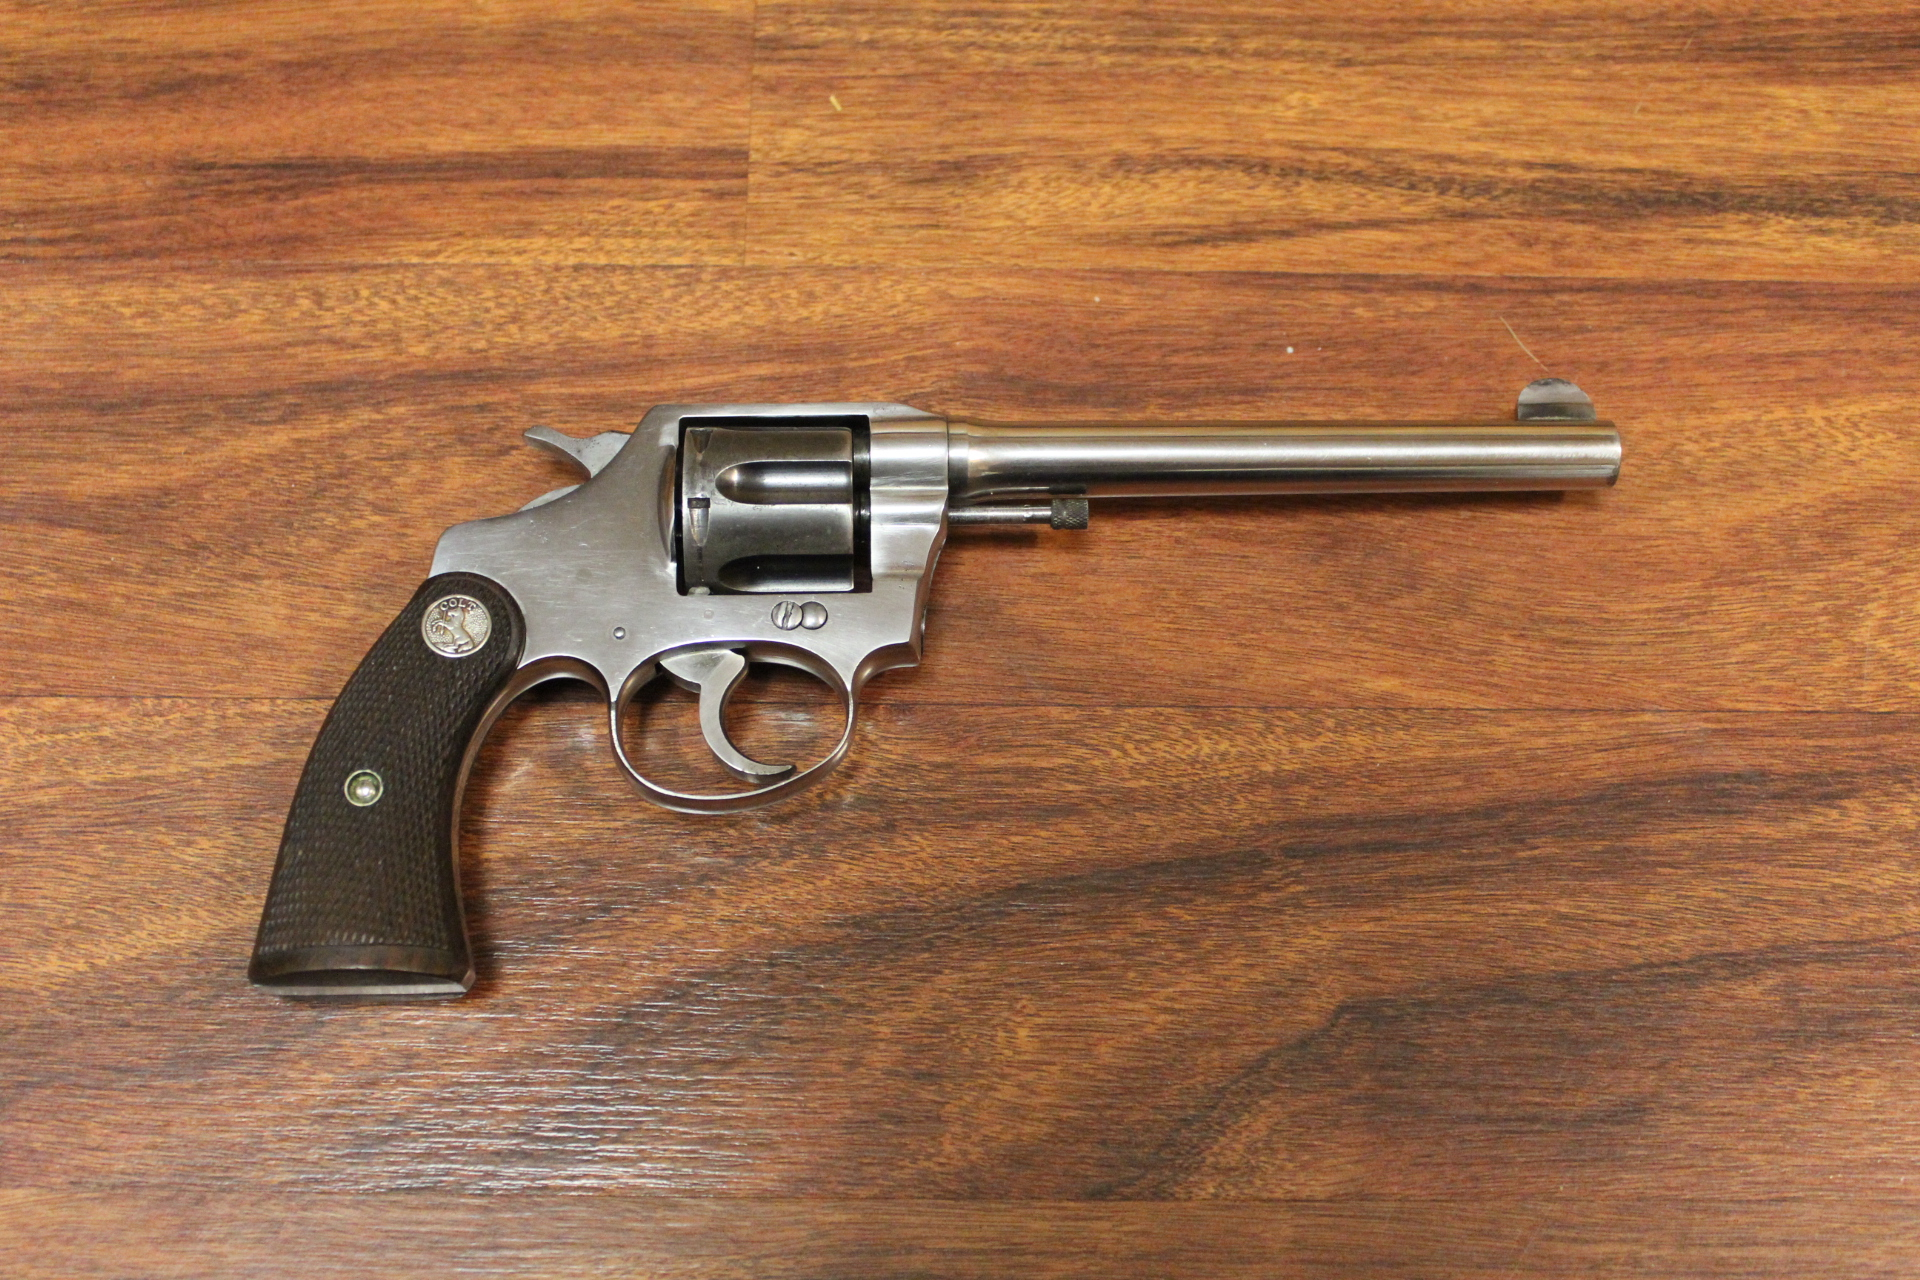 Share some Colt love - a picture thread-colt_pp_38s-w_r.jpg